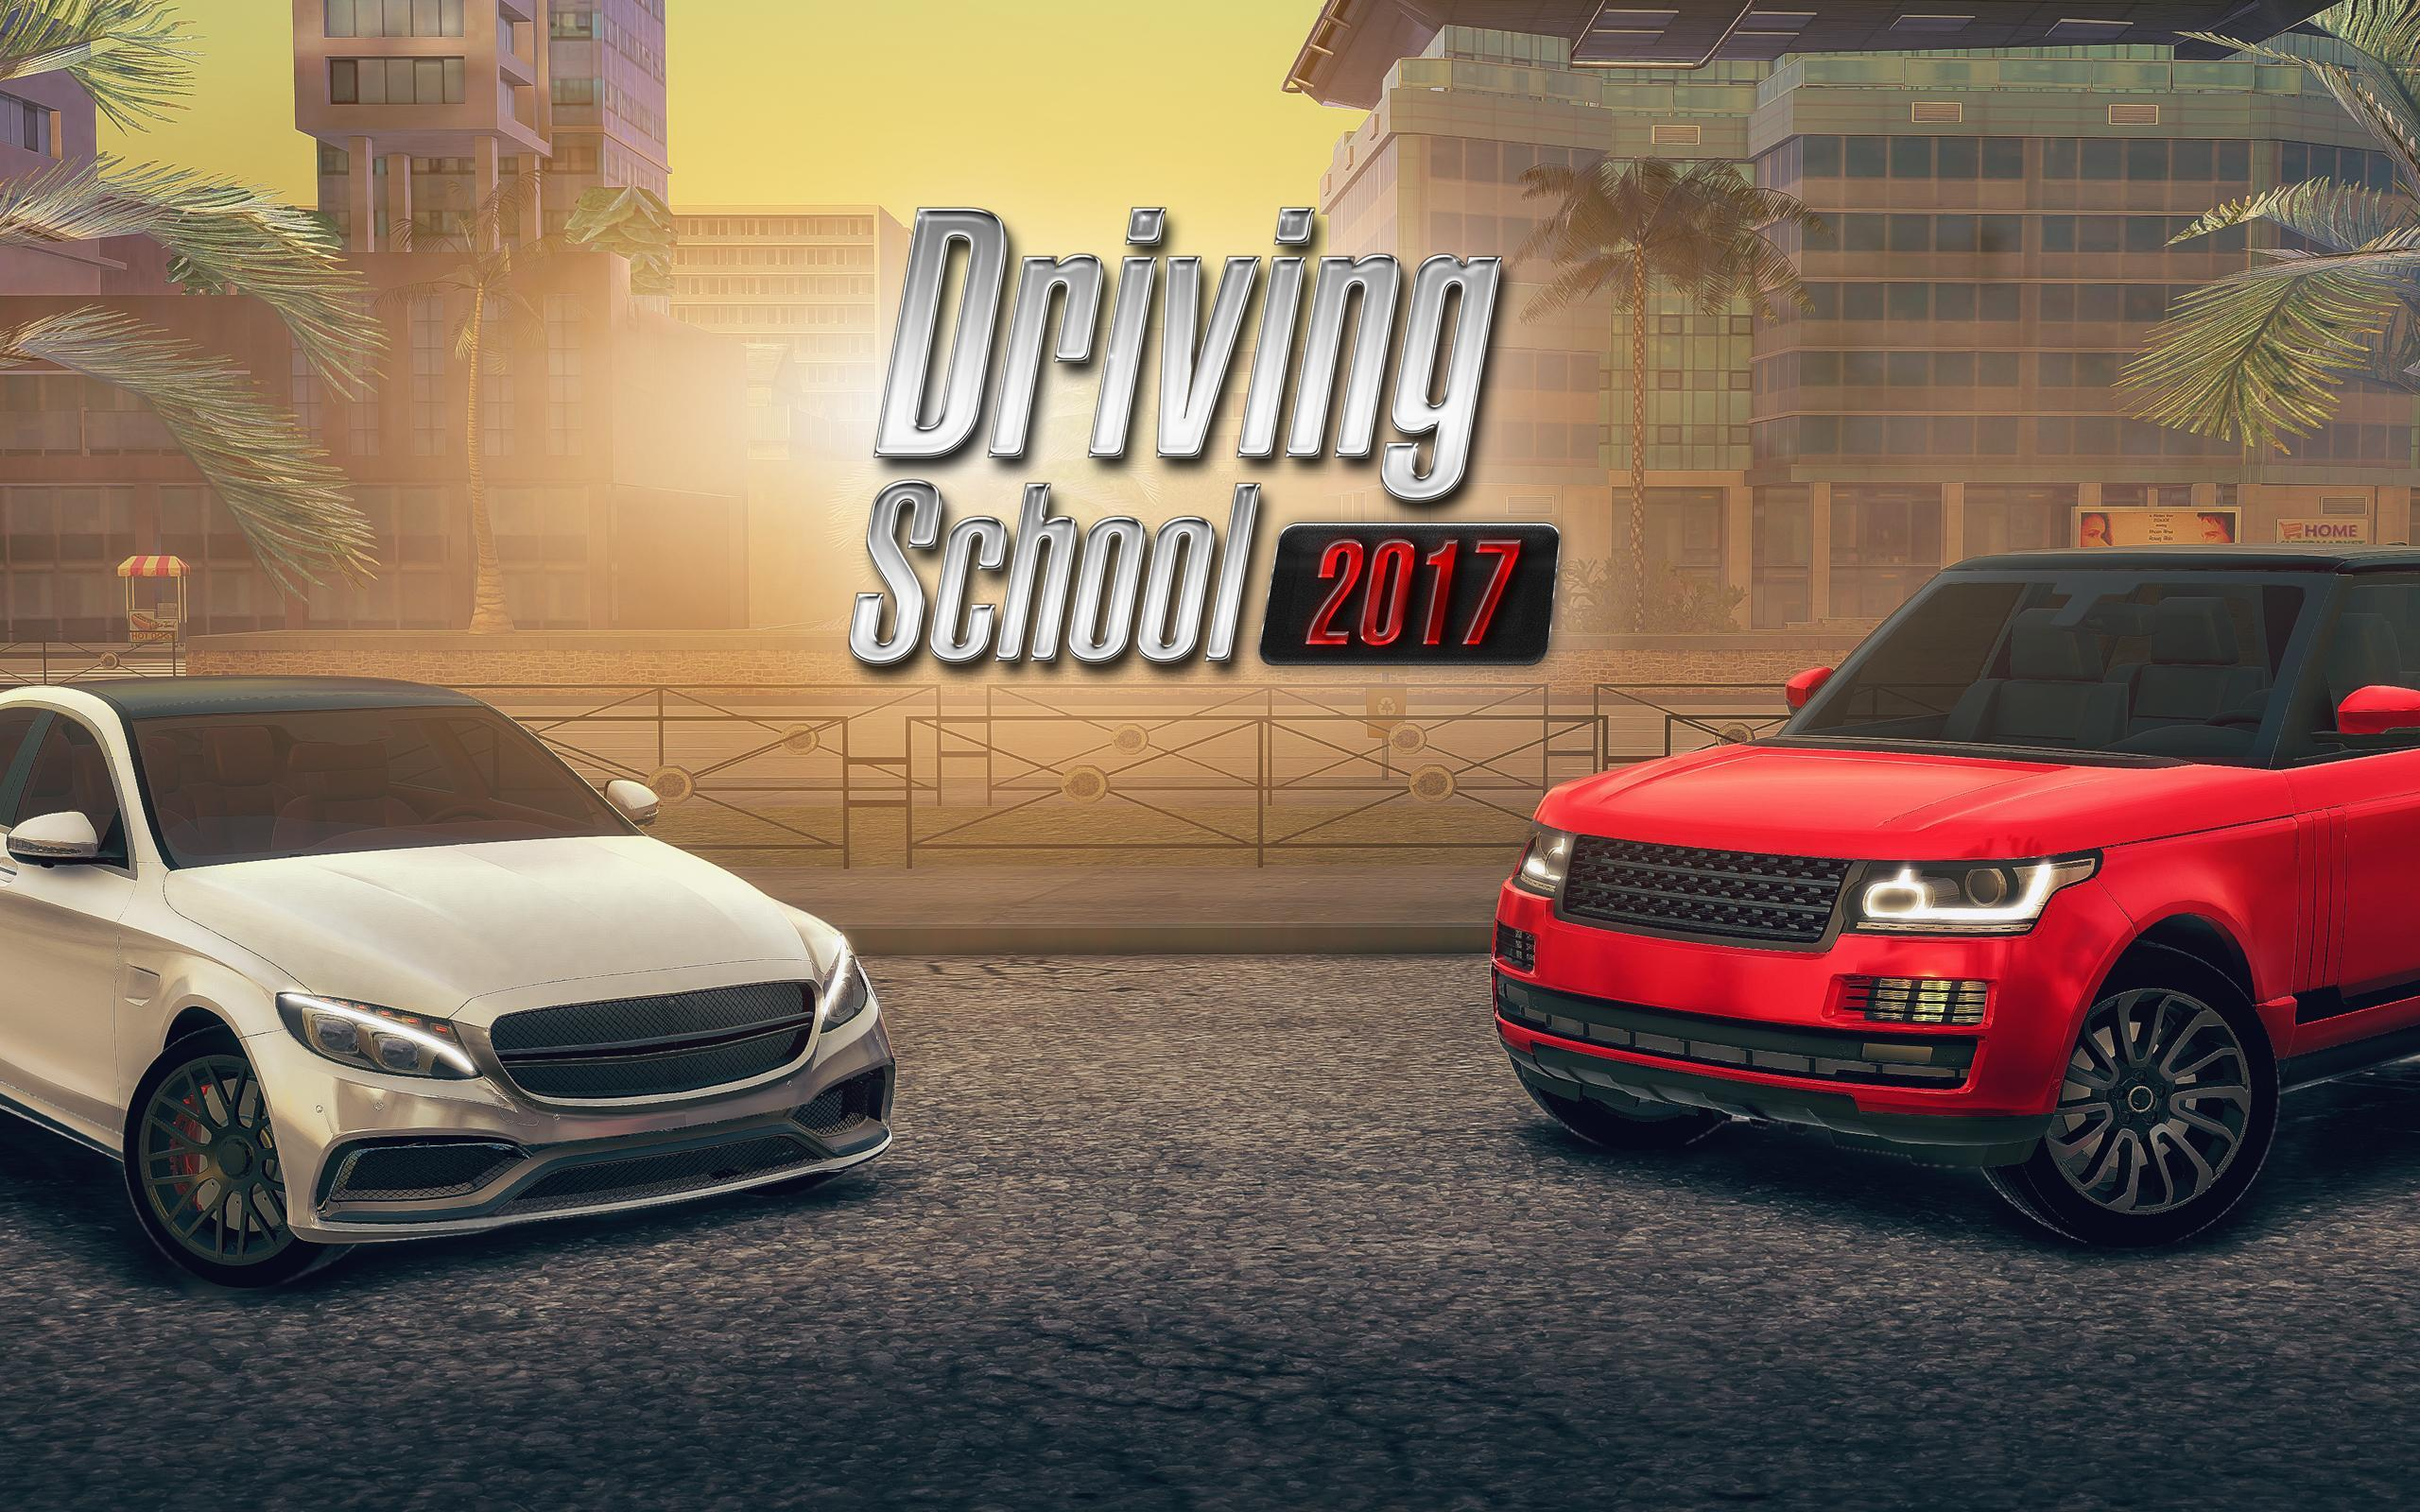 Driving School 2017 for Android - APK Download